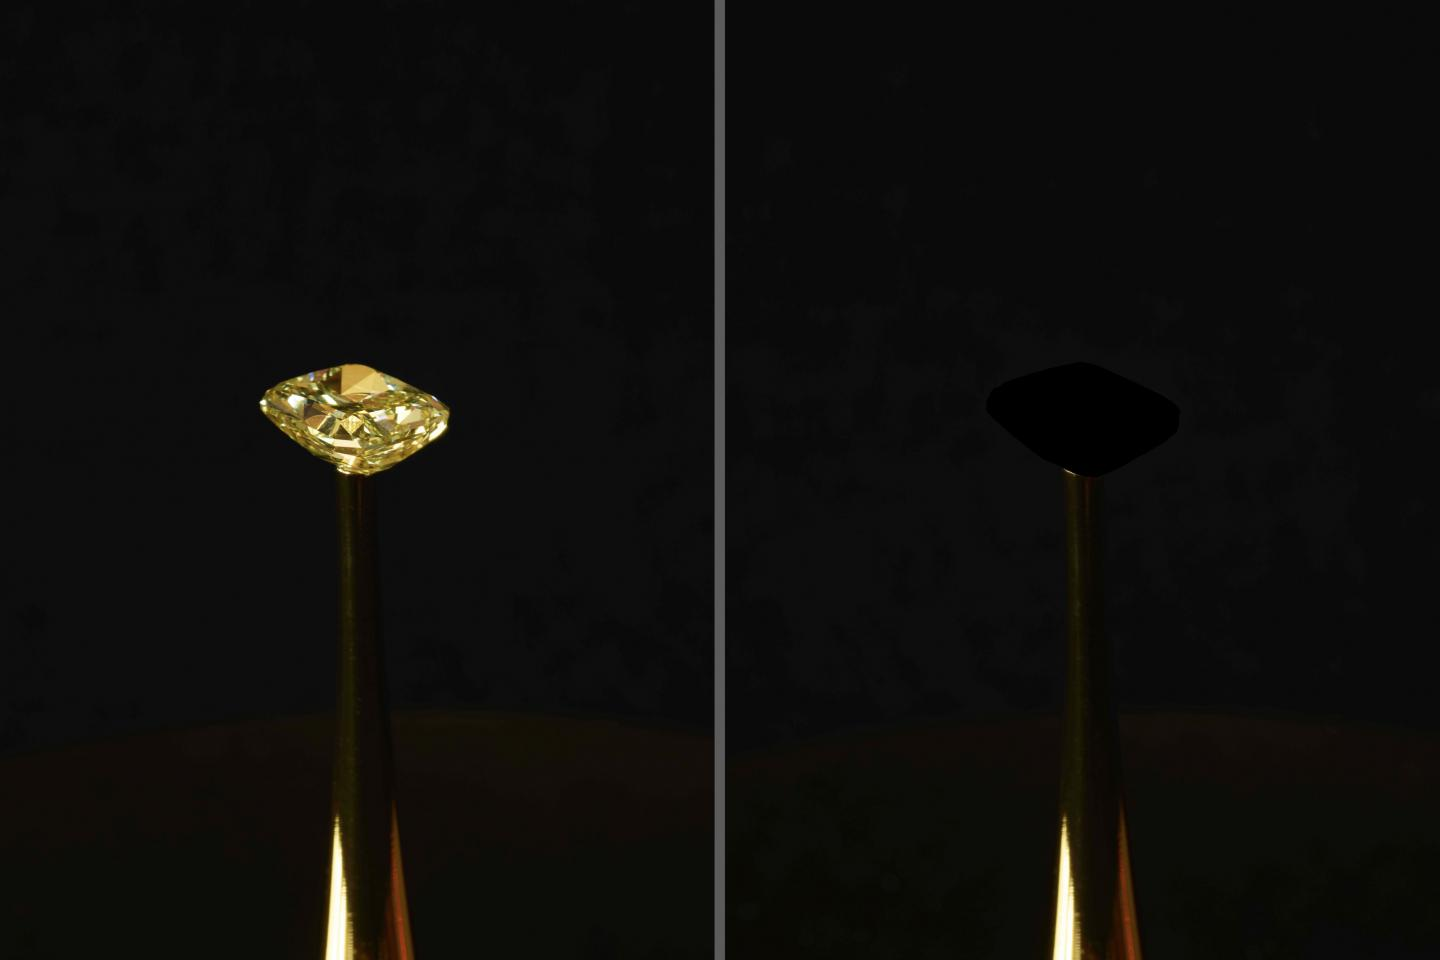 The Redemption of Vanity is a work of art by MIT artist-in-residence Diemut Strebe. A 16.78 carat naturaI yellow diamond (value $2M), the most brilliant material on earth, is covered with light-absorptive carbon nanotubes, which make the diamond appear to disappear. Courtesy of Diemut Strebe.